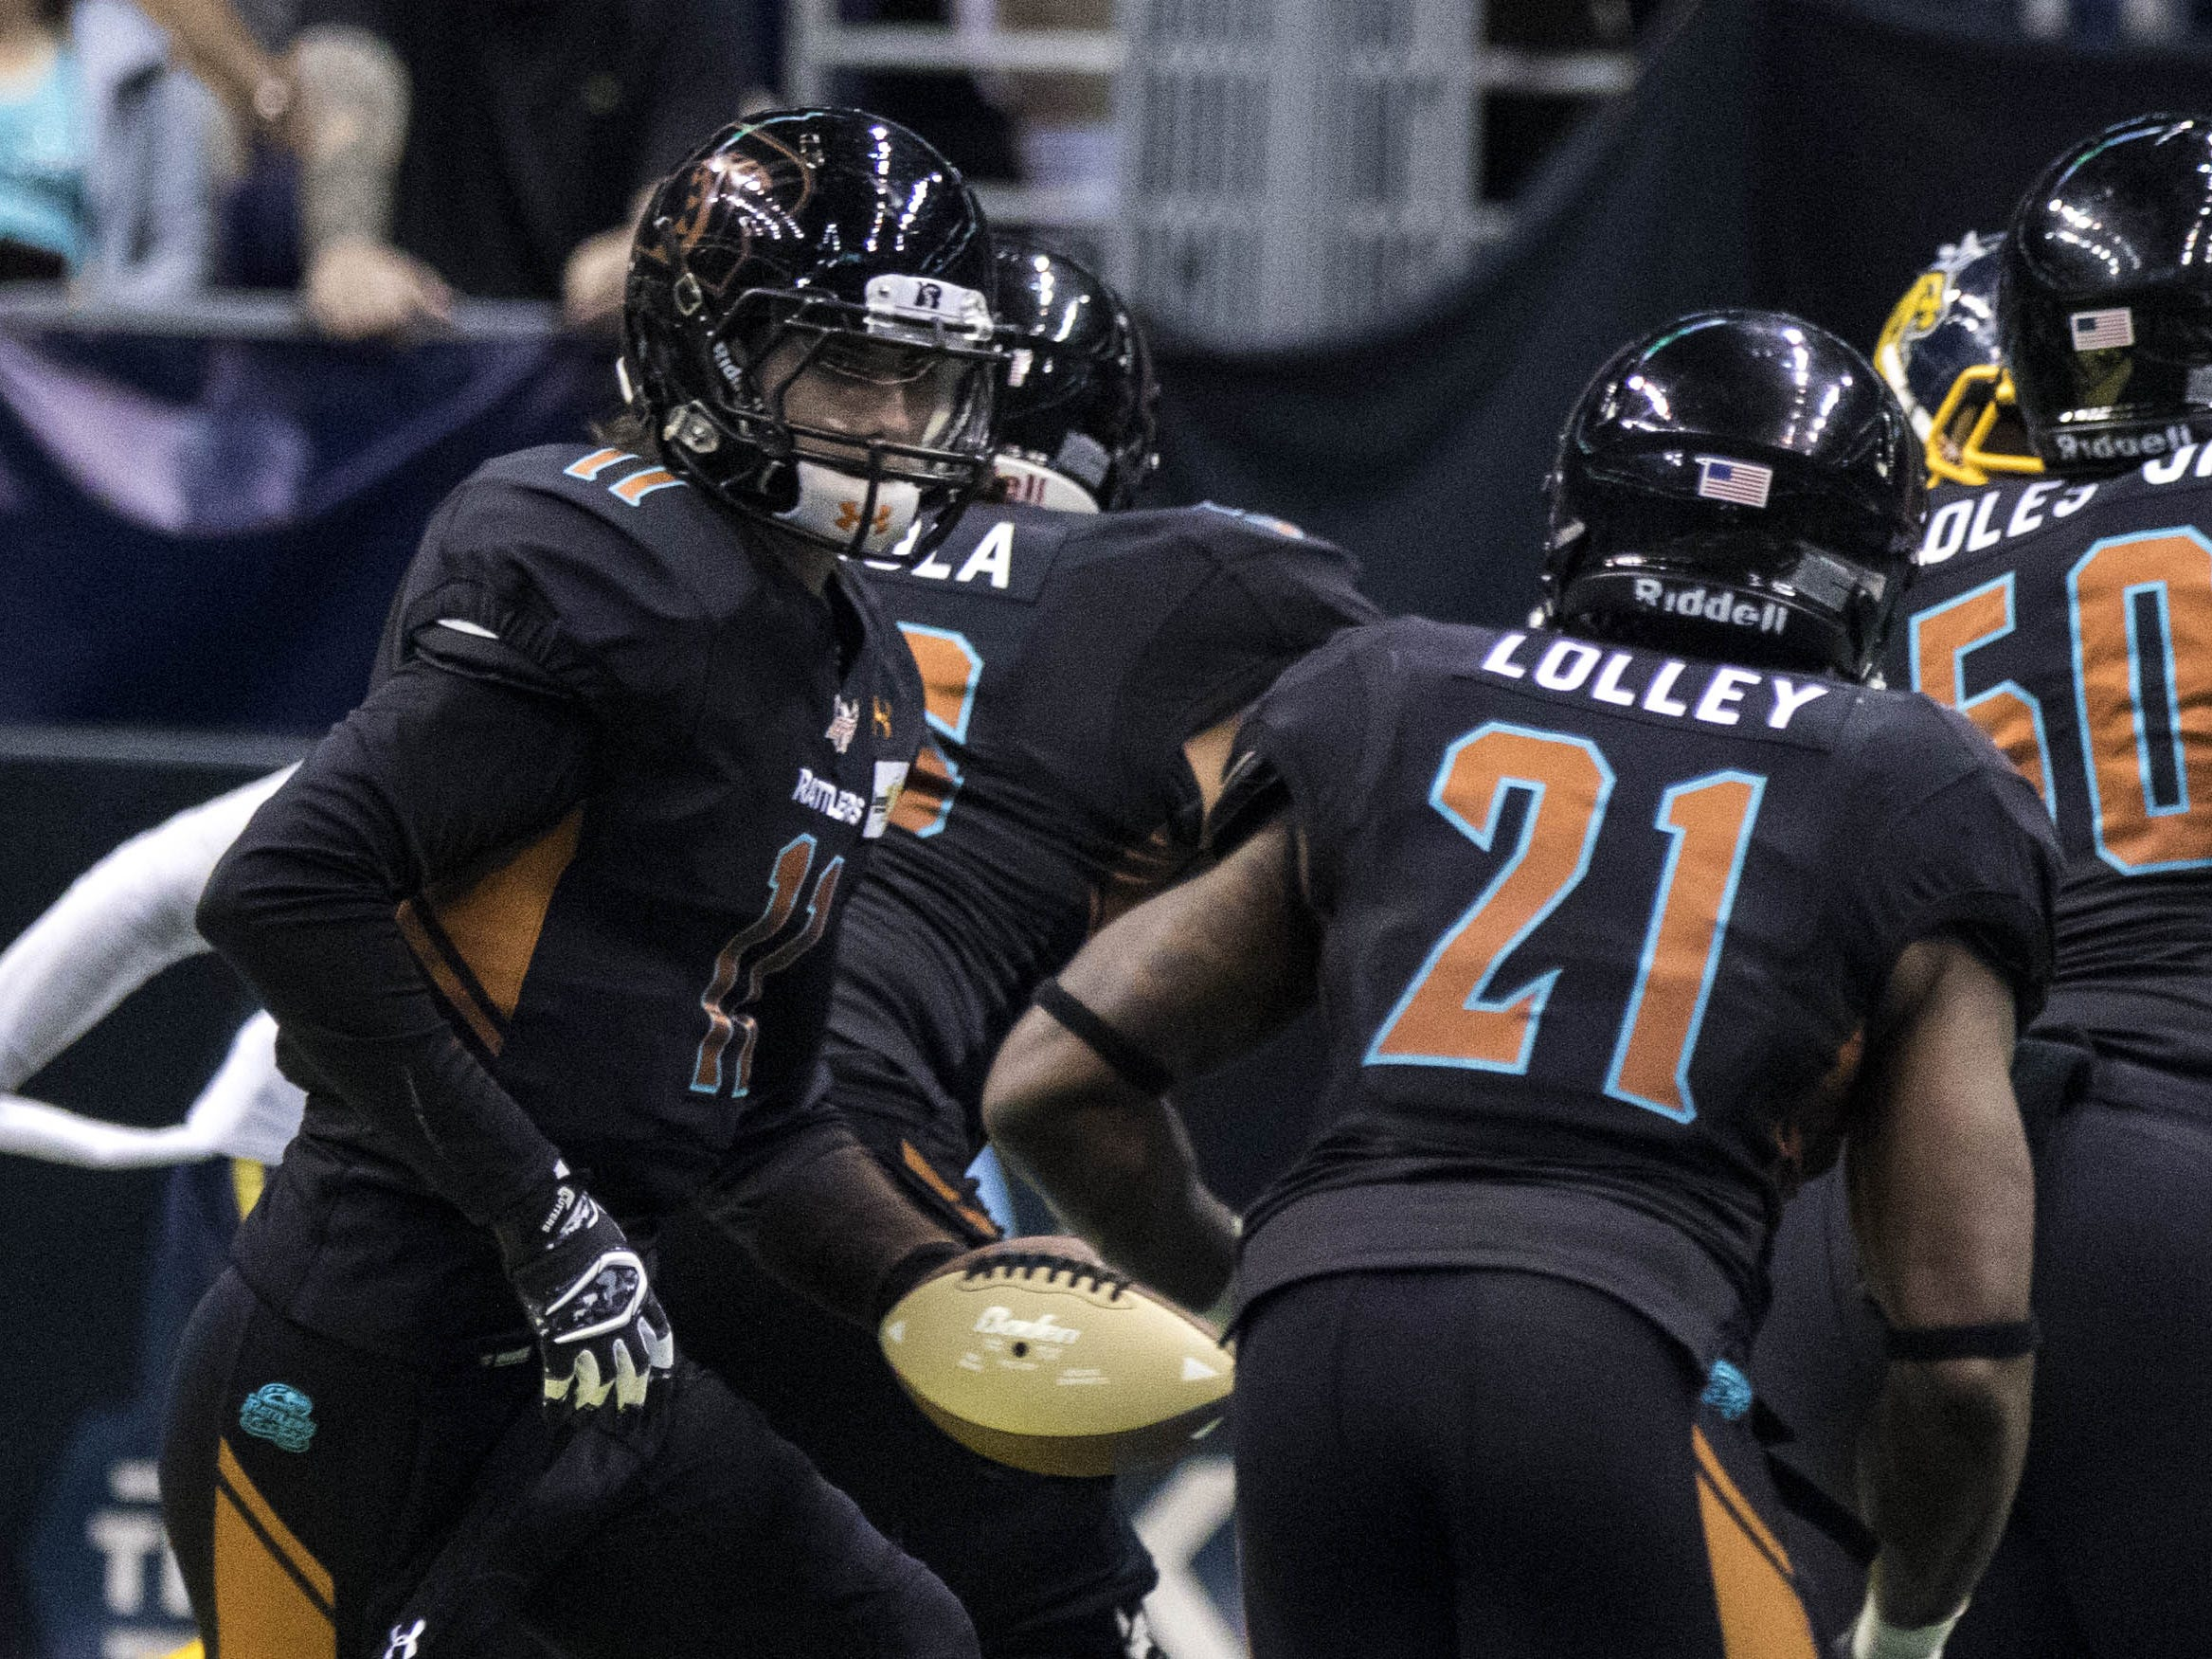 Arizona Rattlers' Jeff Ziemba (11) hands the ball off to  Jabre Lolley (21)  during the second half of their game at Talking Stick Resort Arena in Phoenix, Sunday, March 3, 2019.